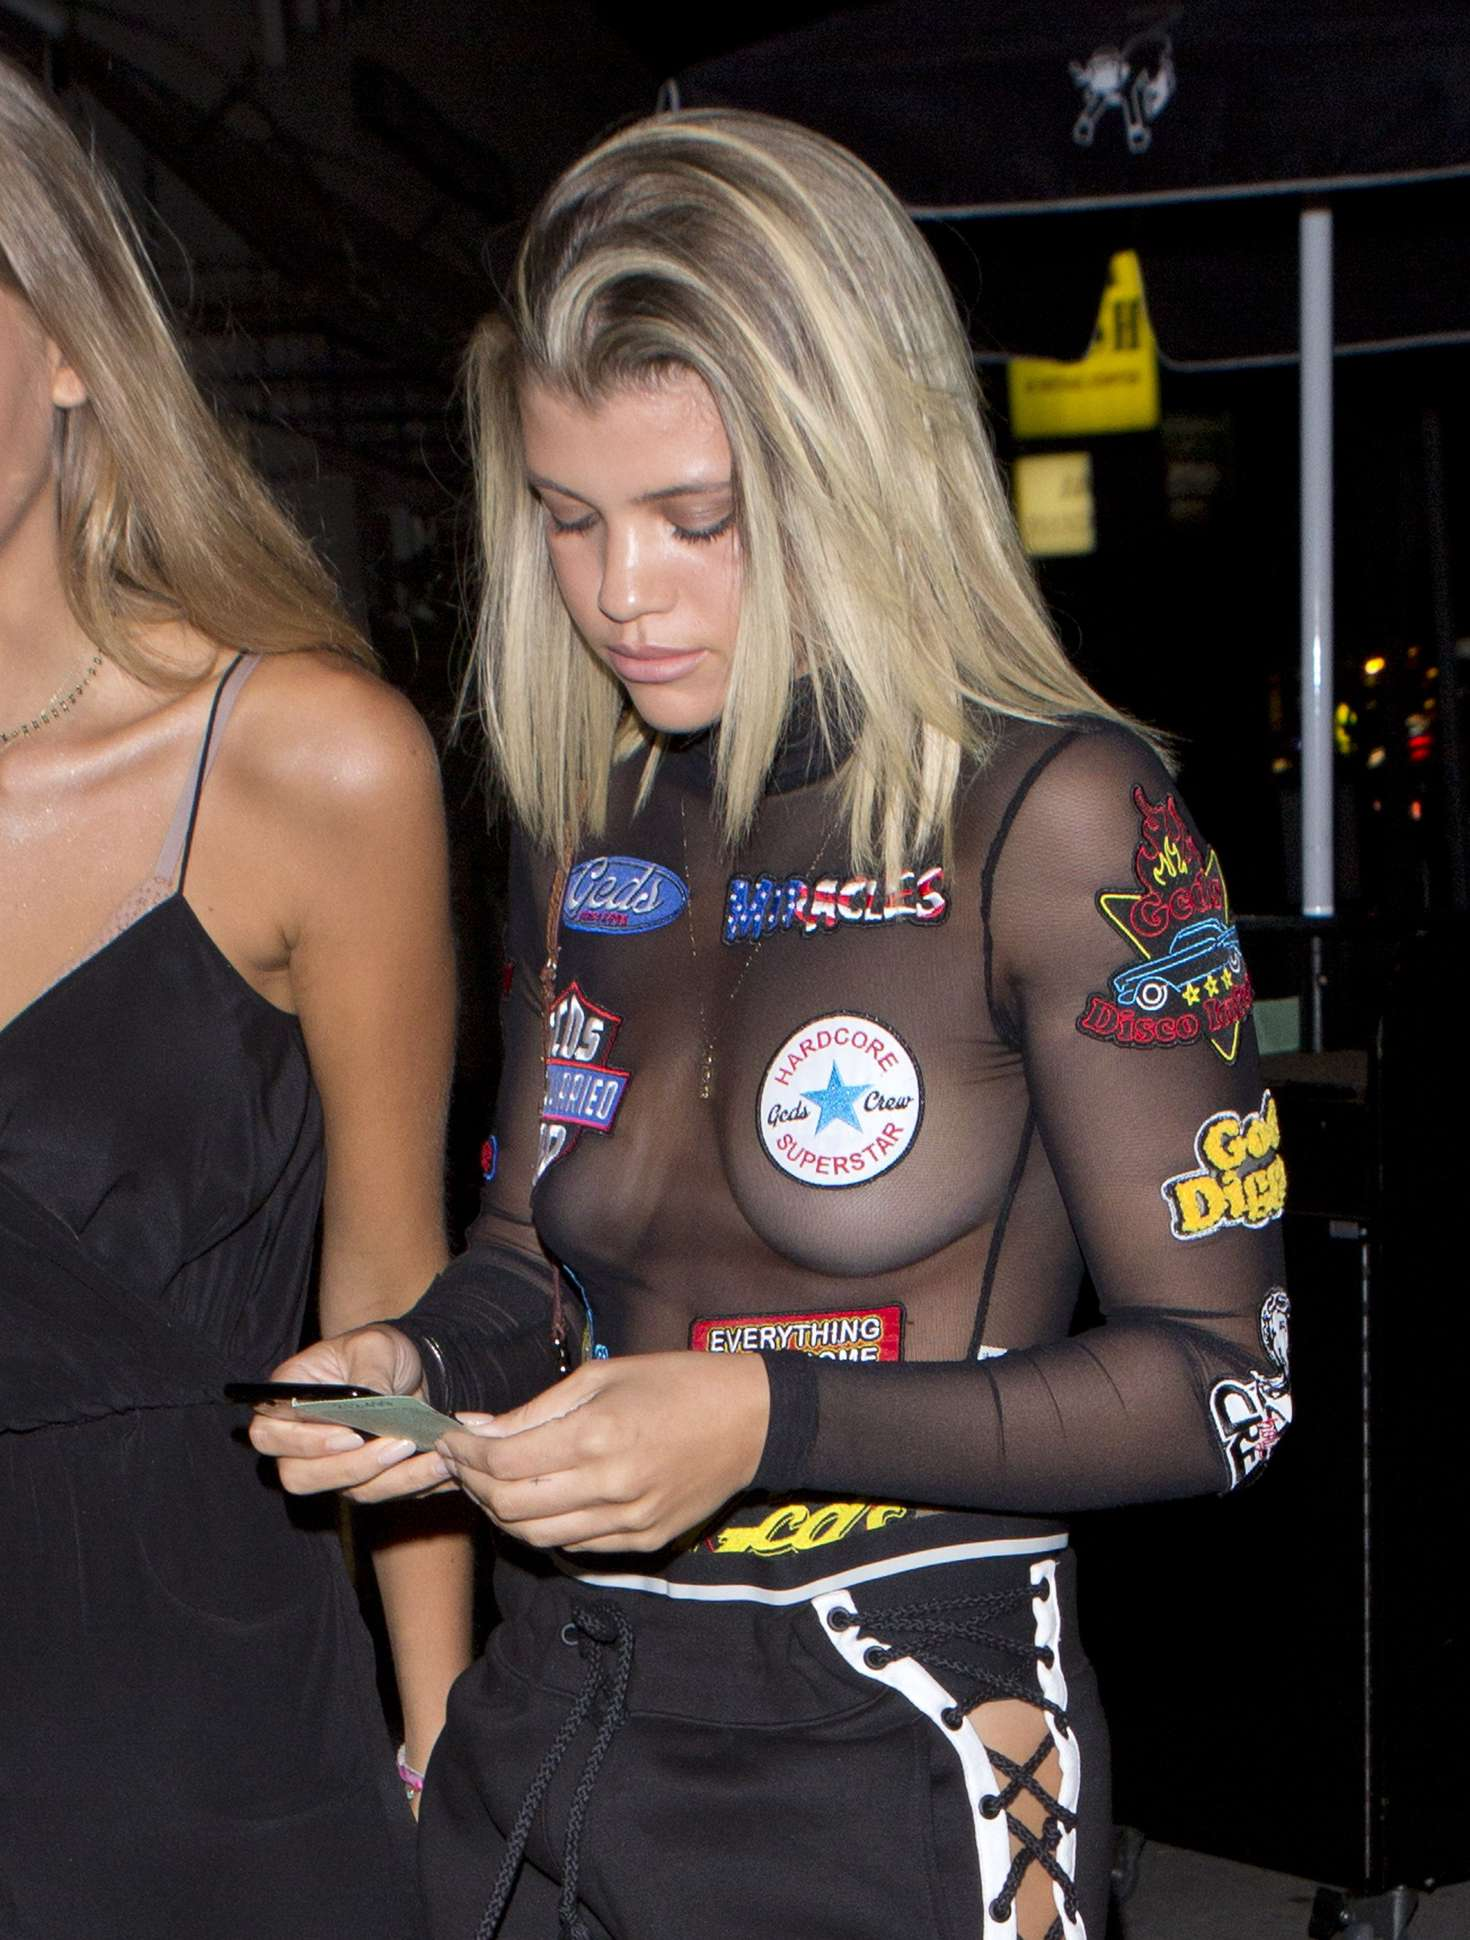 Sofia Richie 2016 : Sofia Richie at The Nice Guy in West Hollywood -12